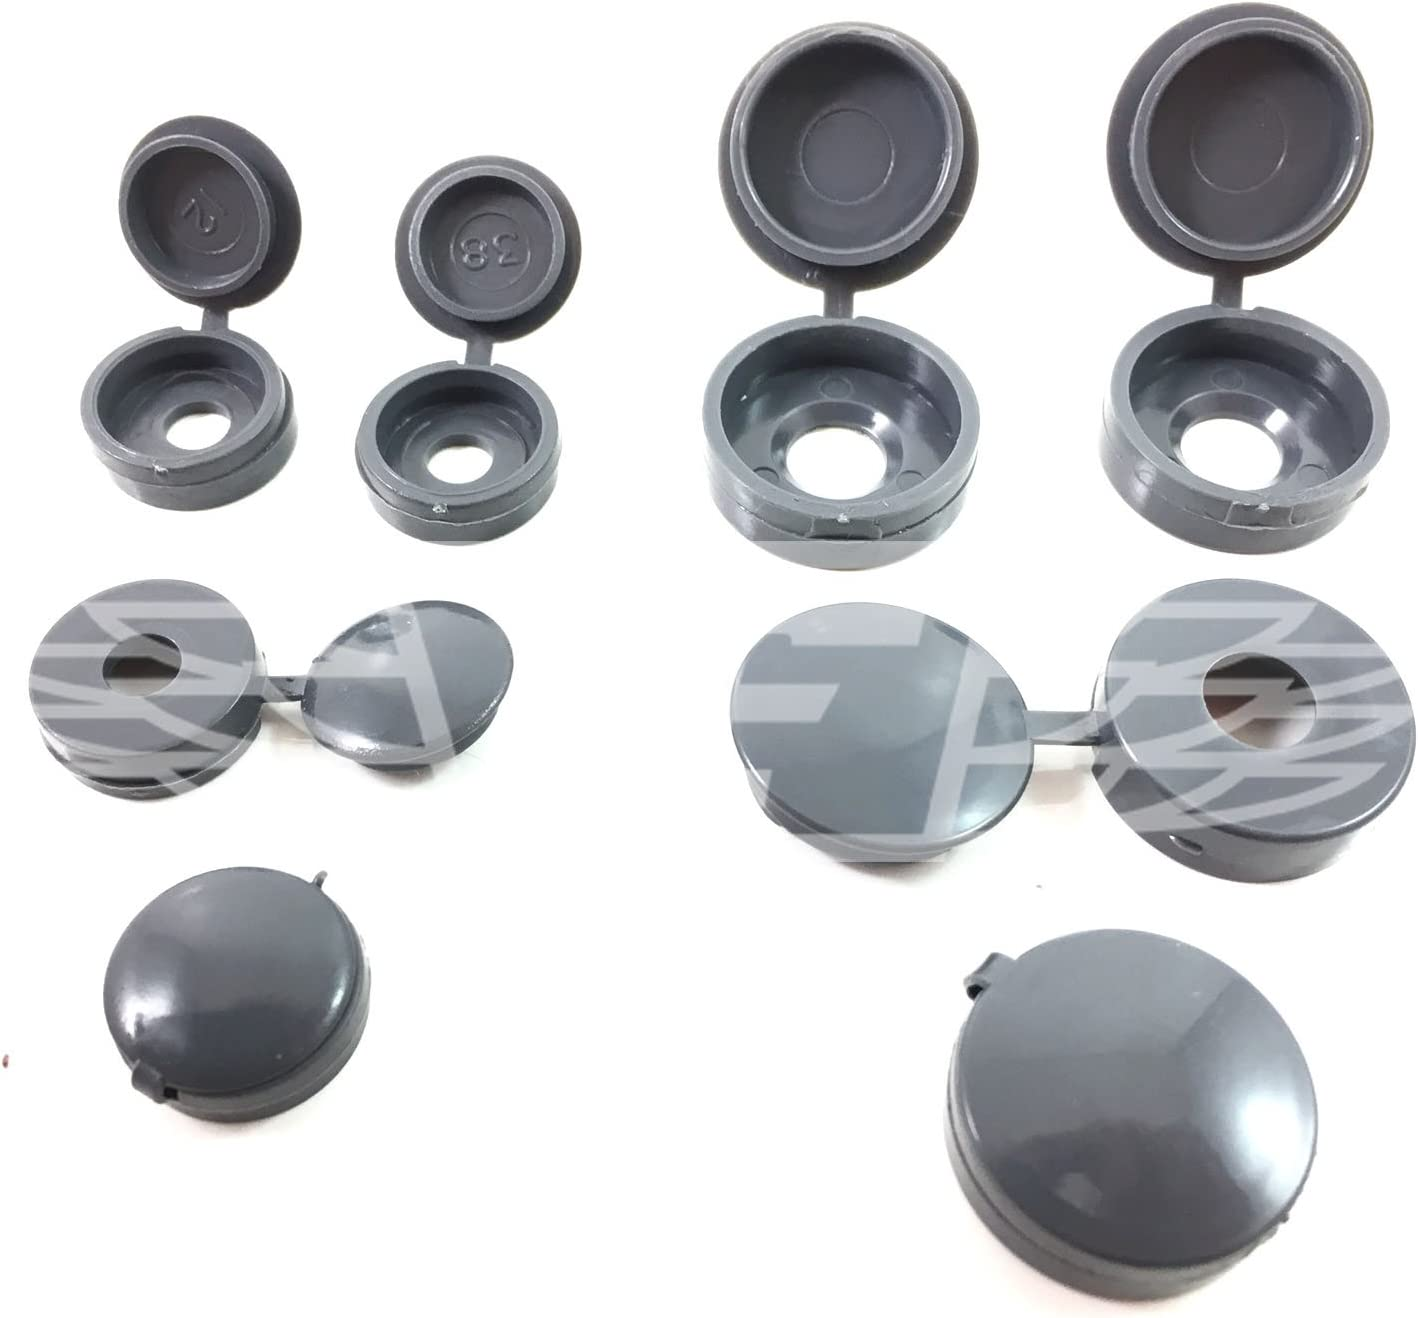 500 x SMALL 6/'s - 8/'s SILVER GREY GUNMETAL TOP QUALITY HINGED SCREW COVER CAP